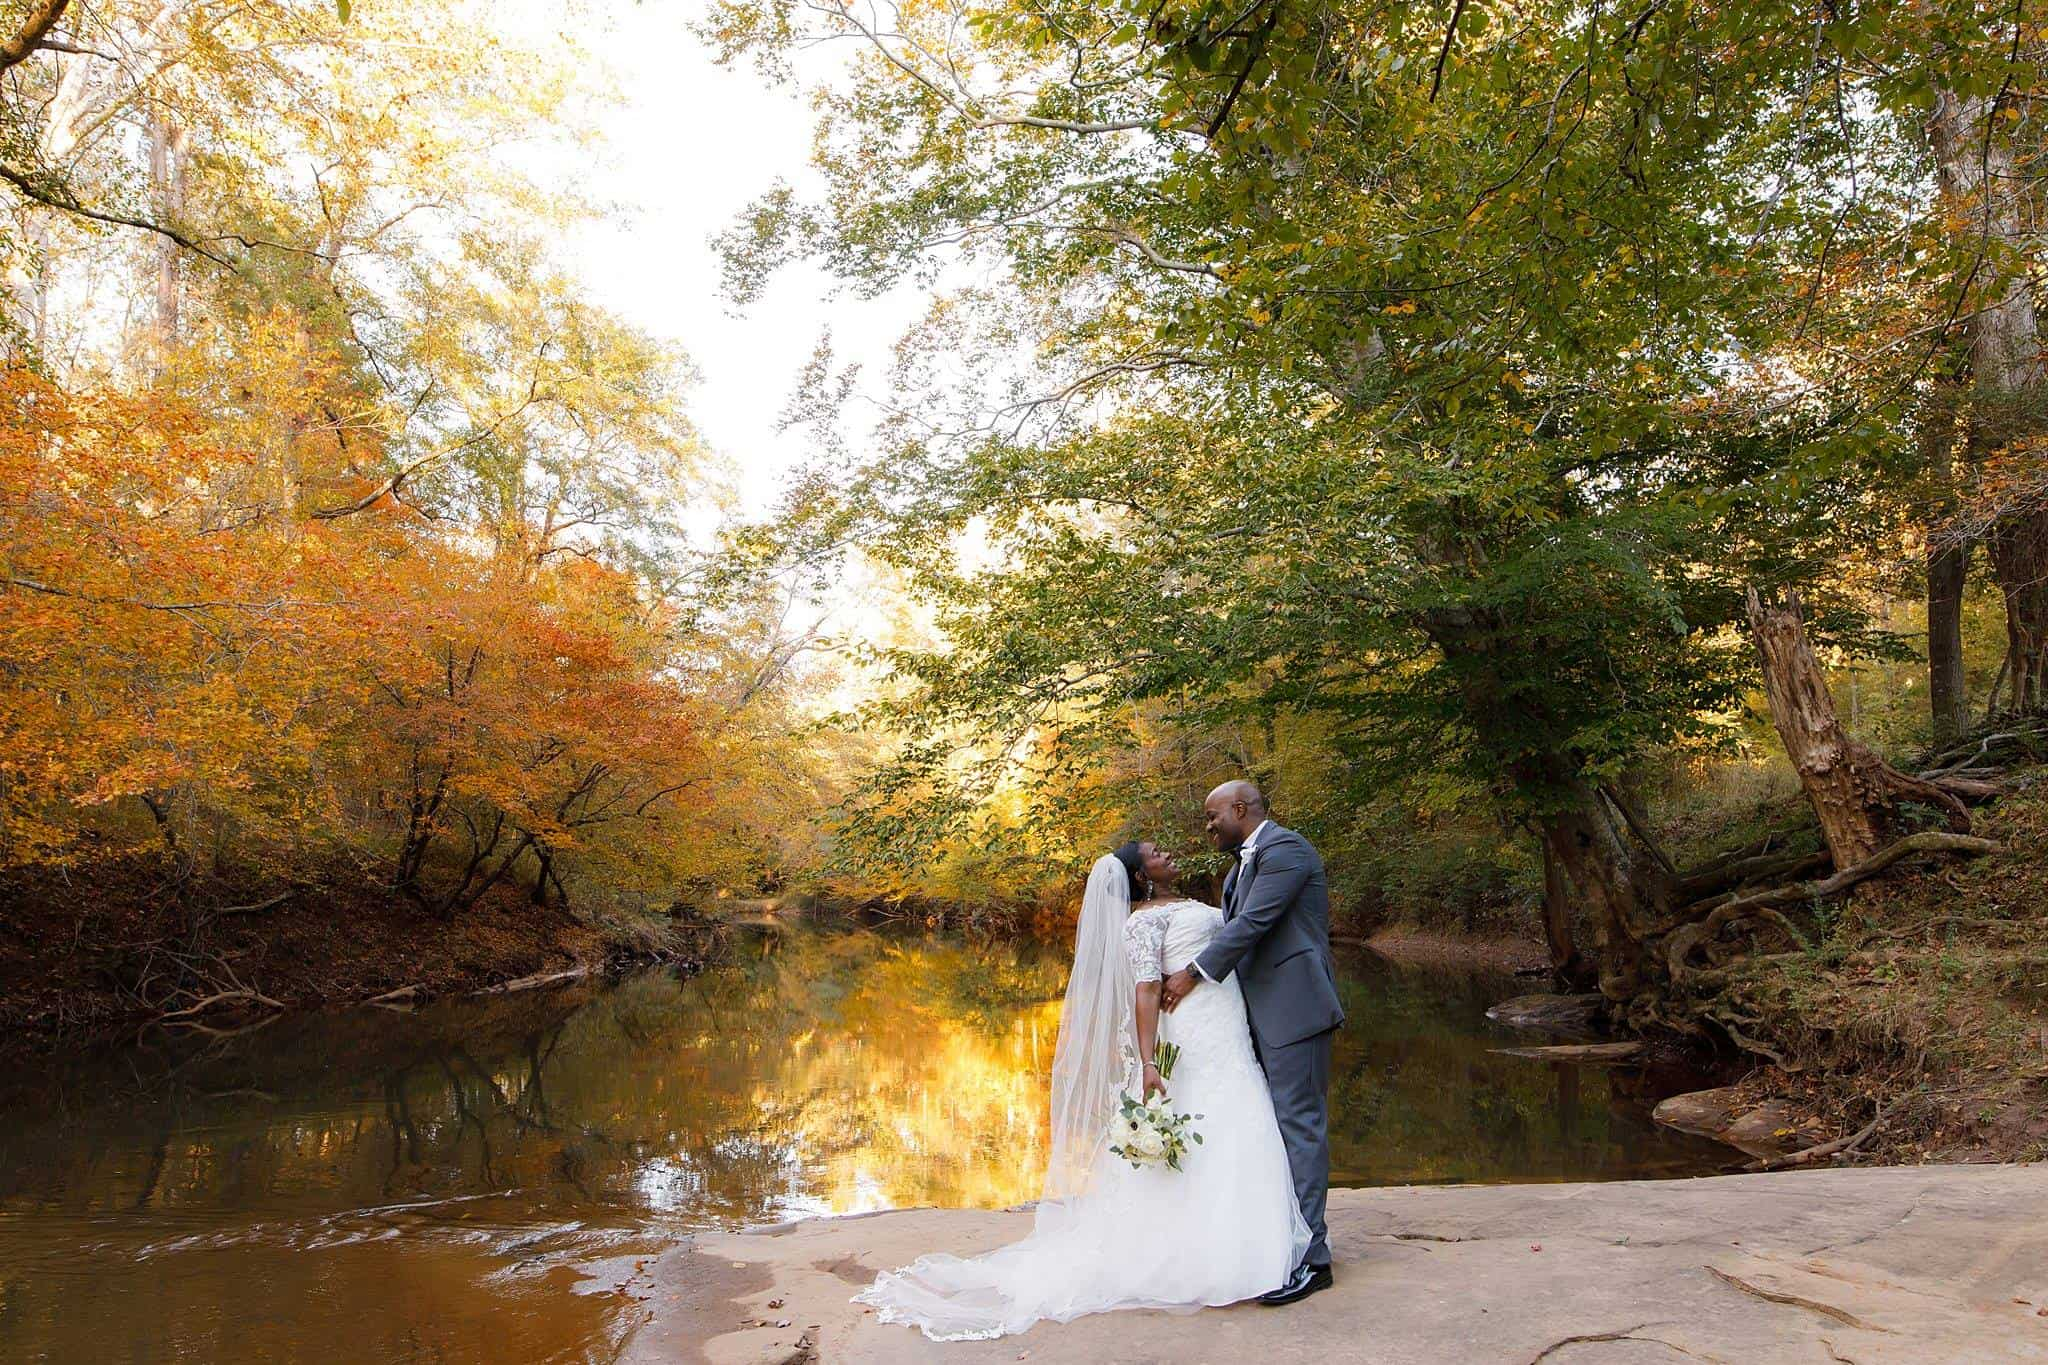 Groom dips his bride in an elegant photo on a rivers edge